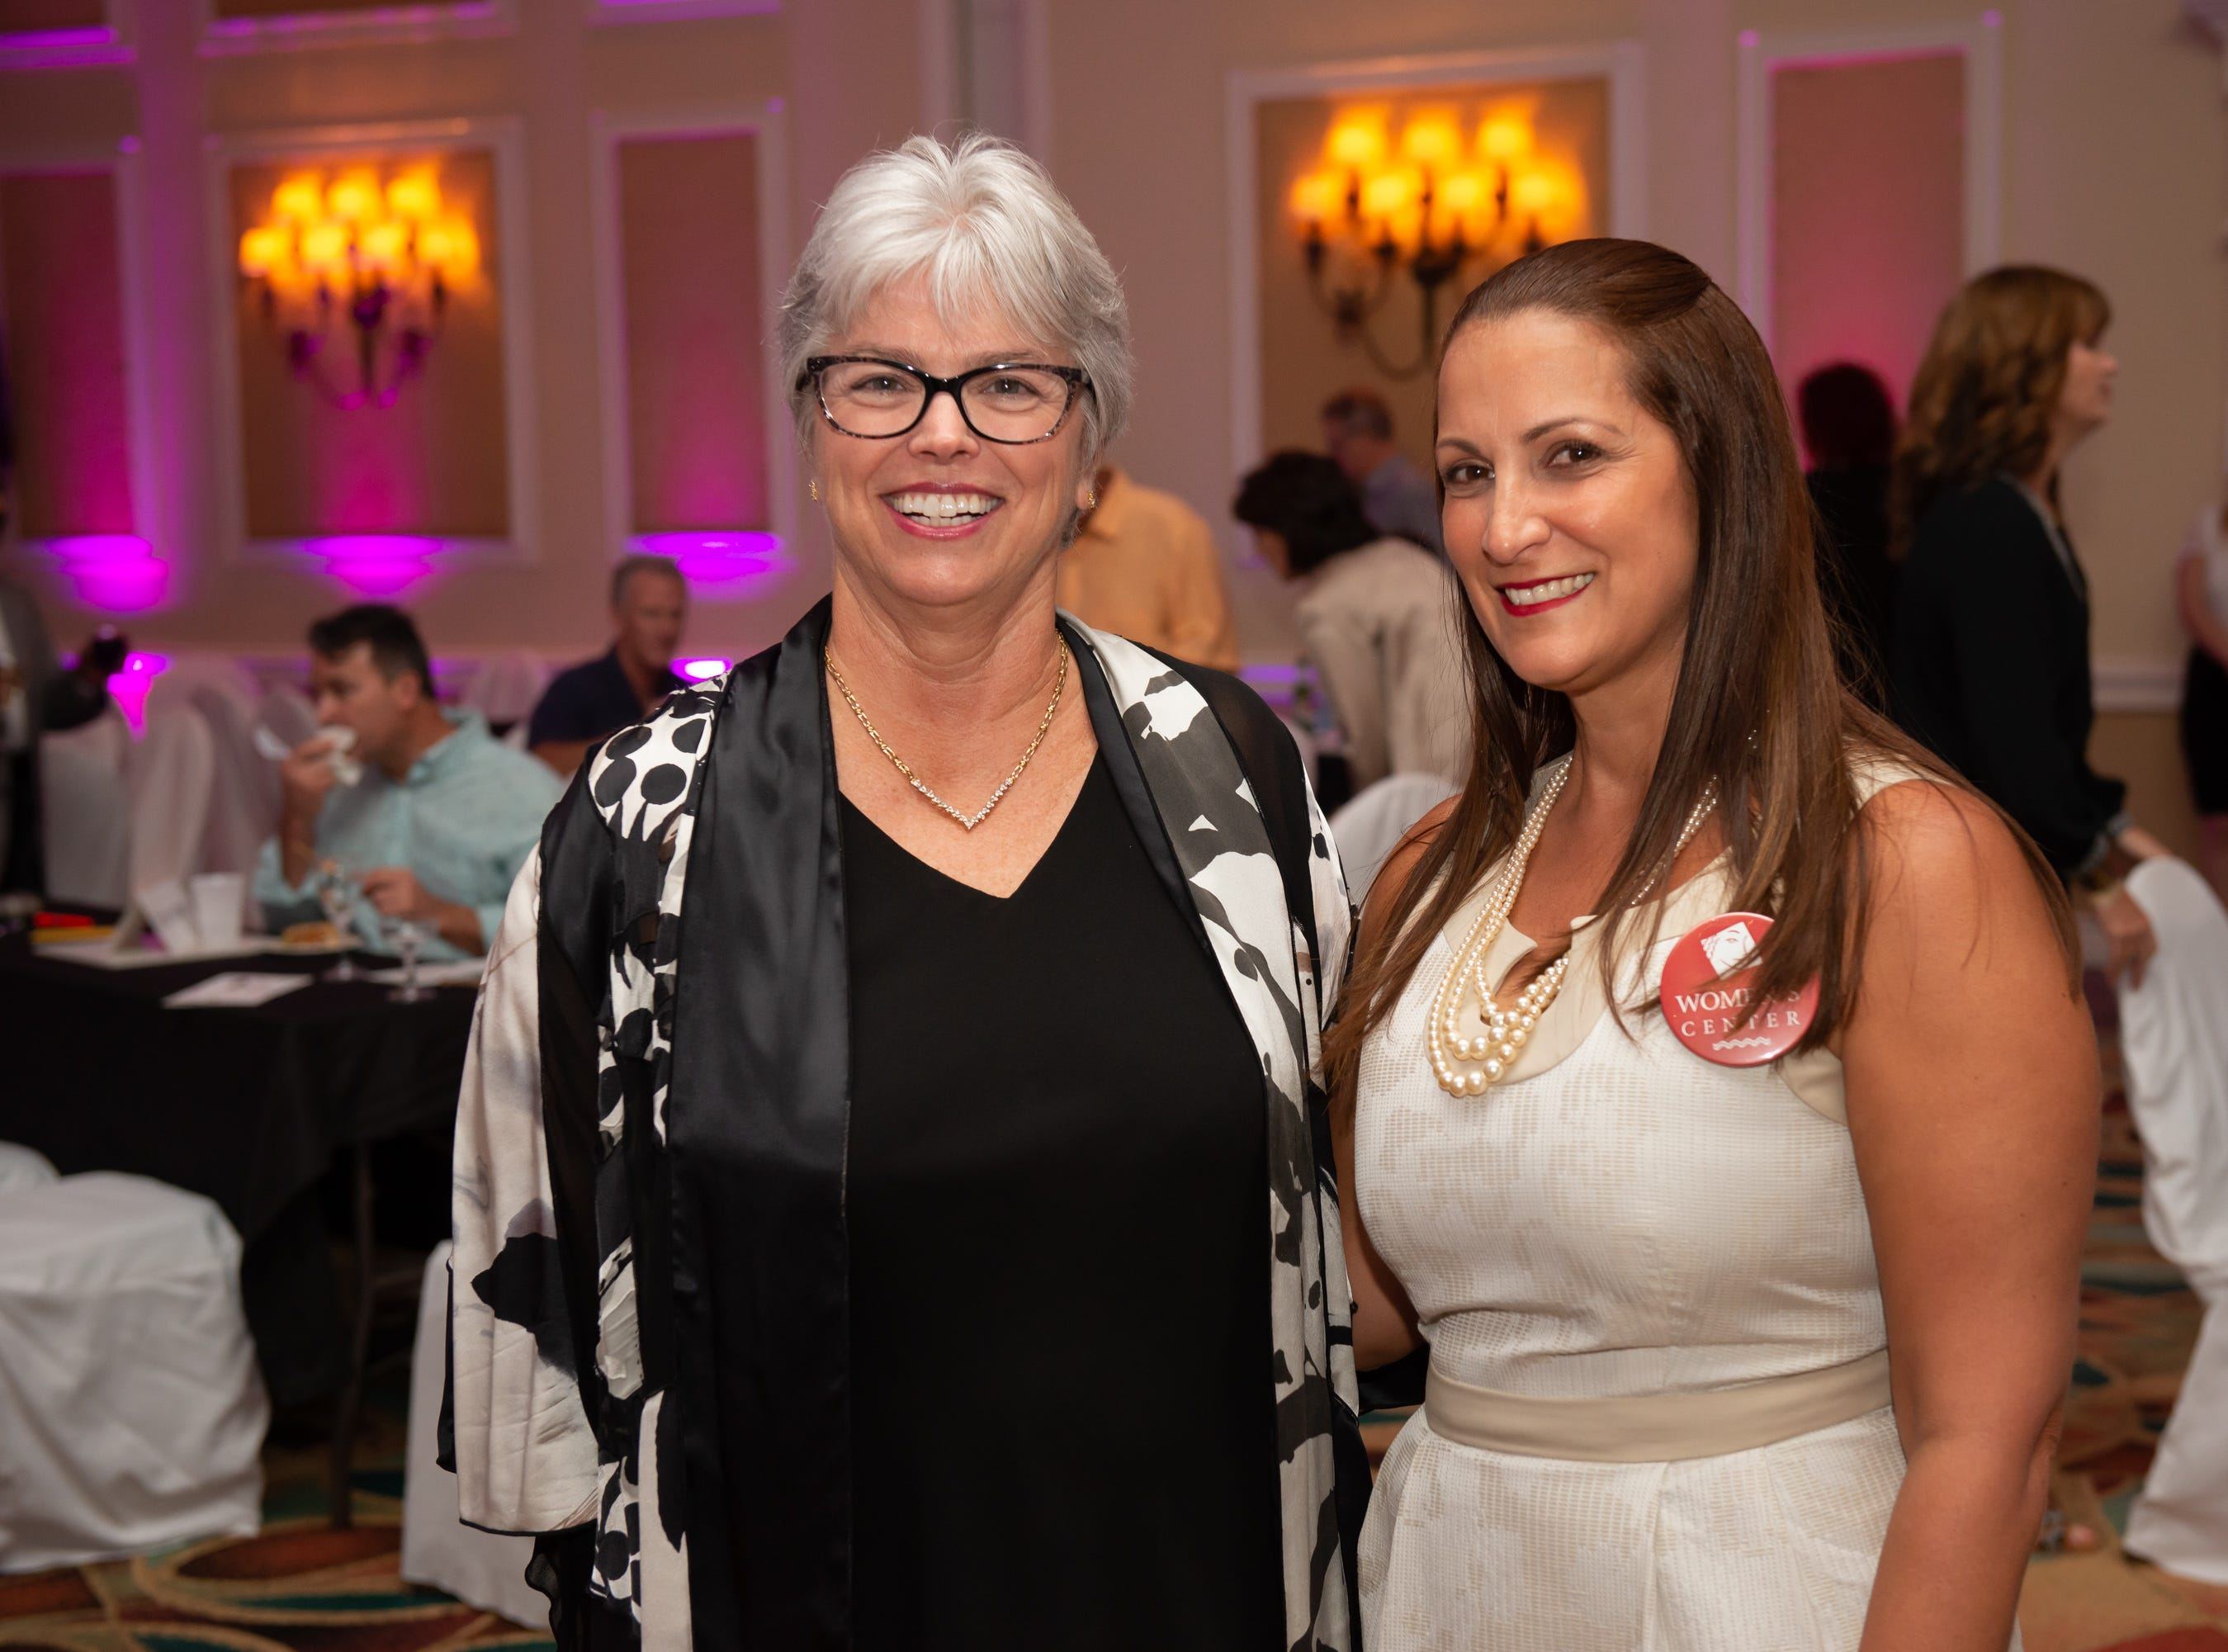 """Dr. Jenny Gessler and Dr. Jessica Calvo-Blando at """"Dude Looks Like a Lady"""" event benefitting the Women's Center."""